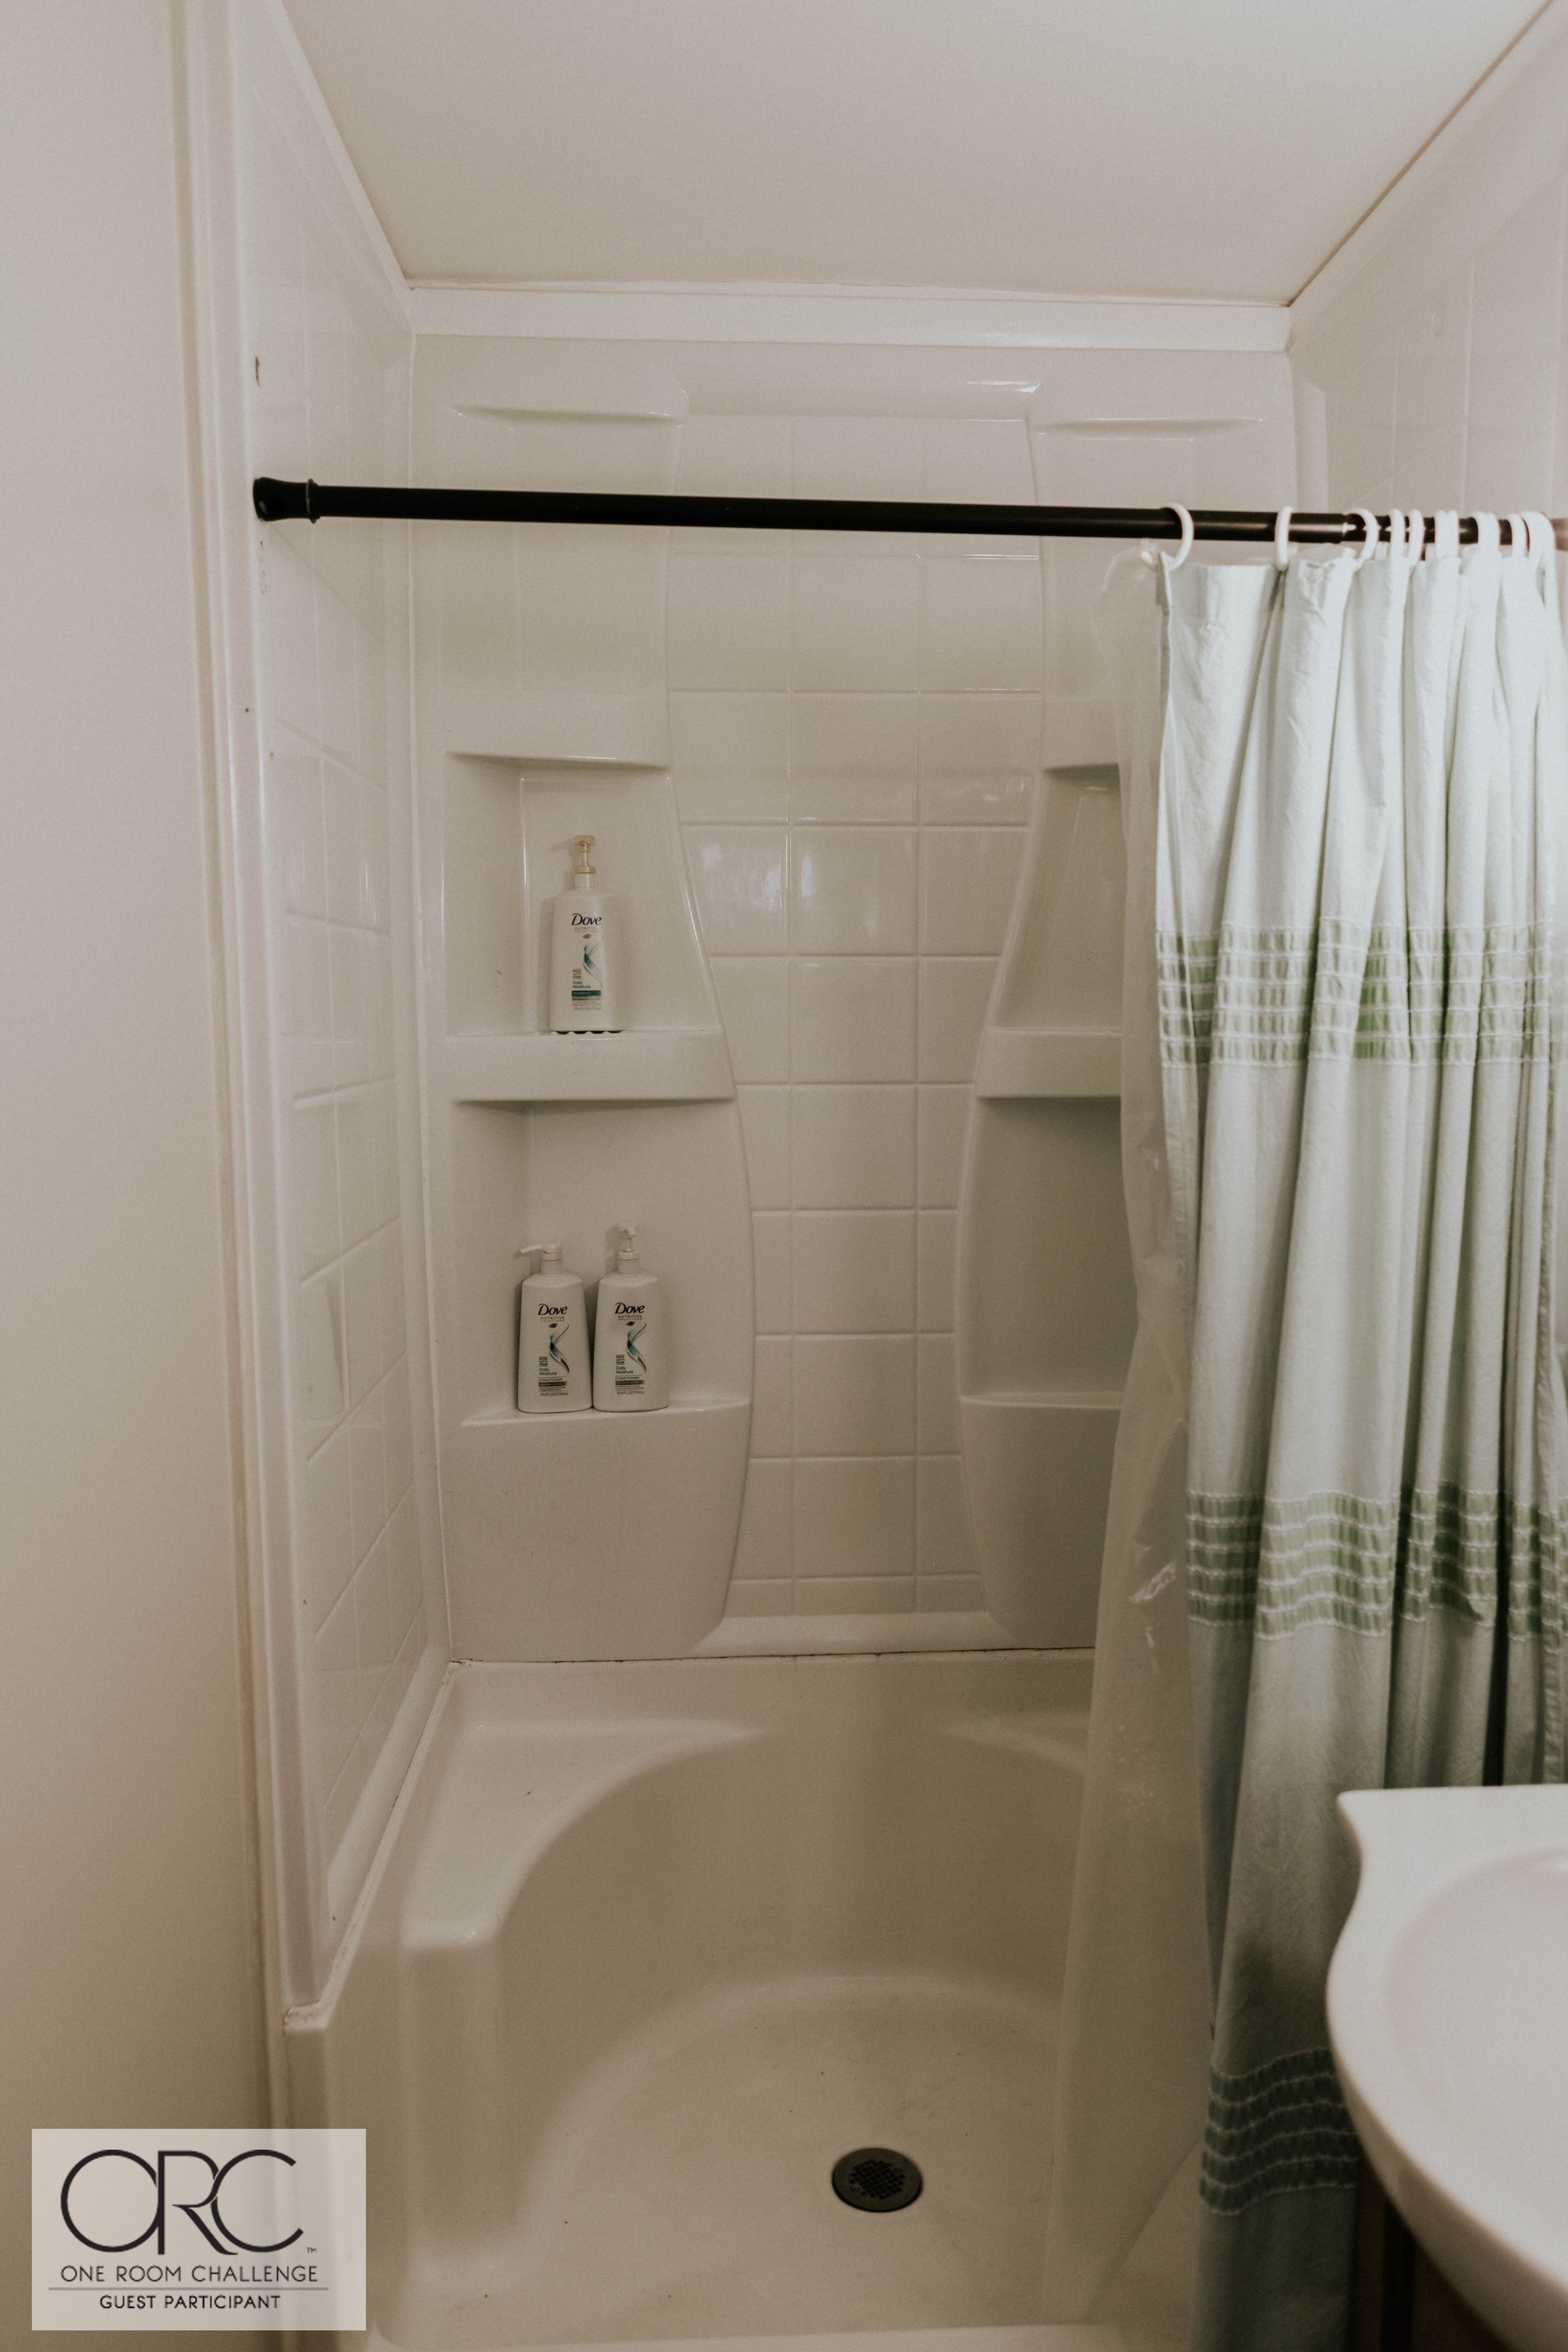 GUEST PARTICIPANT ONE ROOM CHALLENGE MASTER BATHROOM 6 (1 of 1).jpg